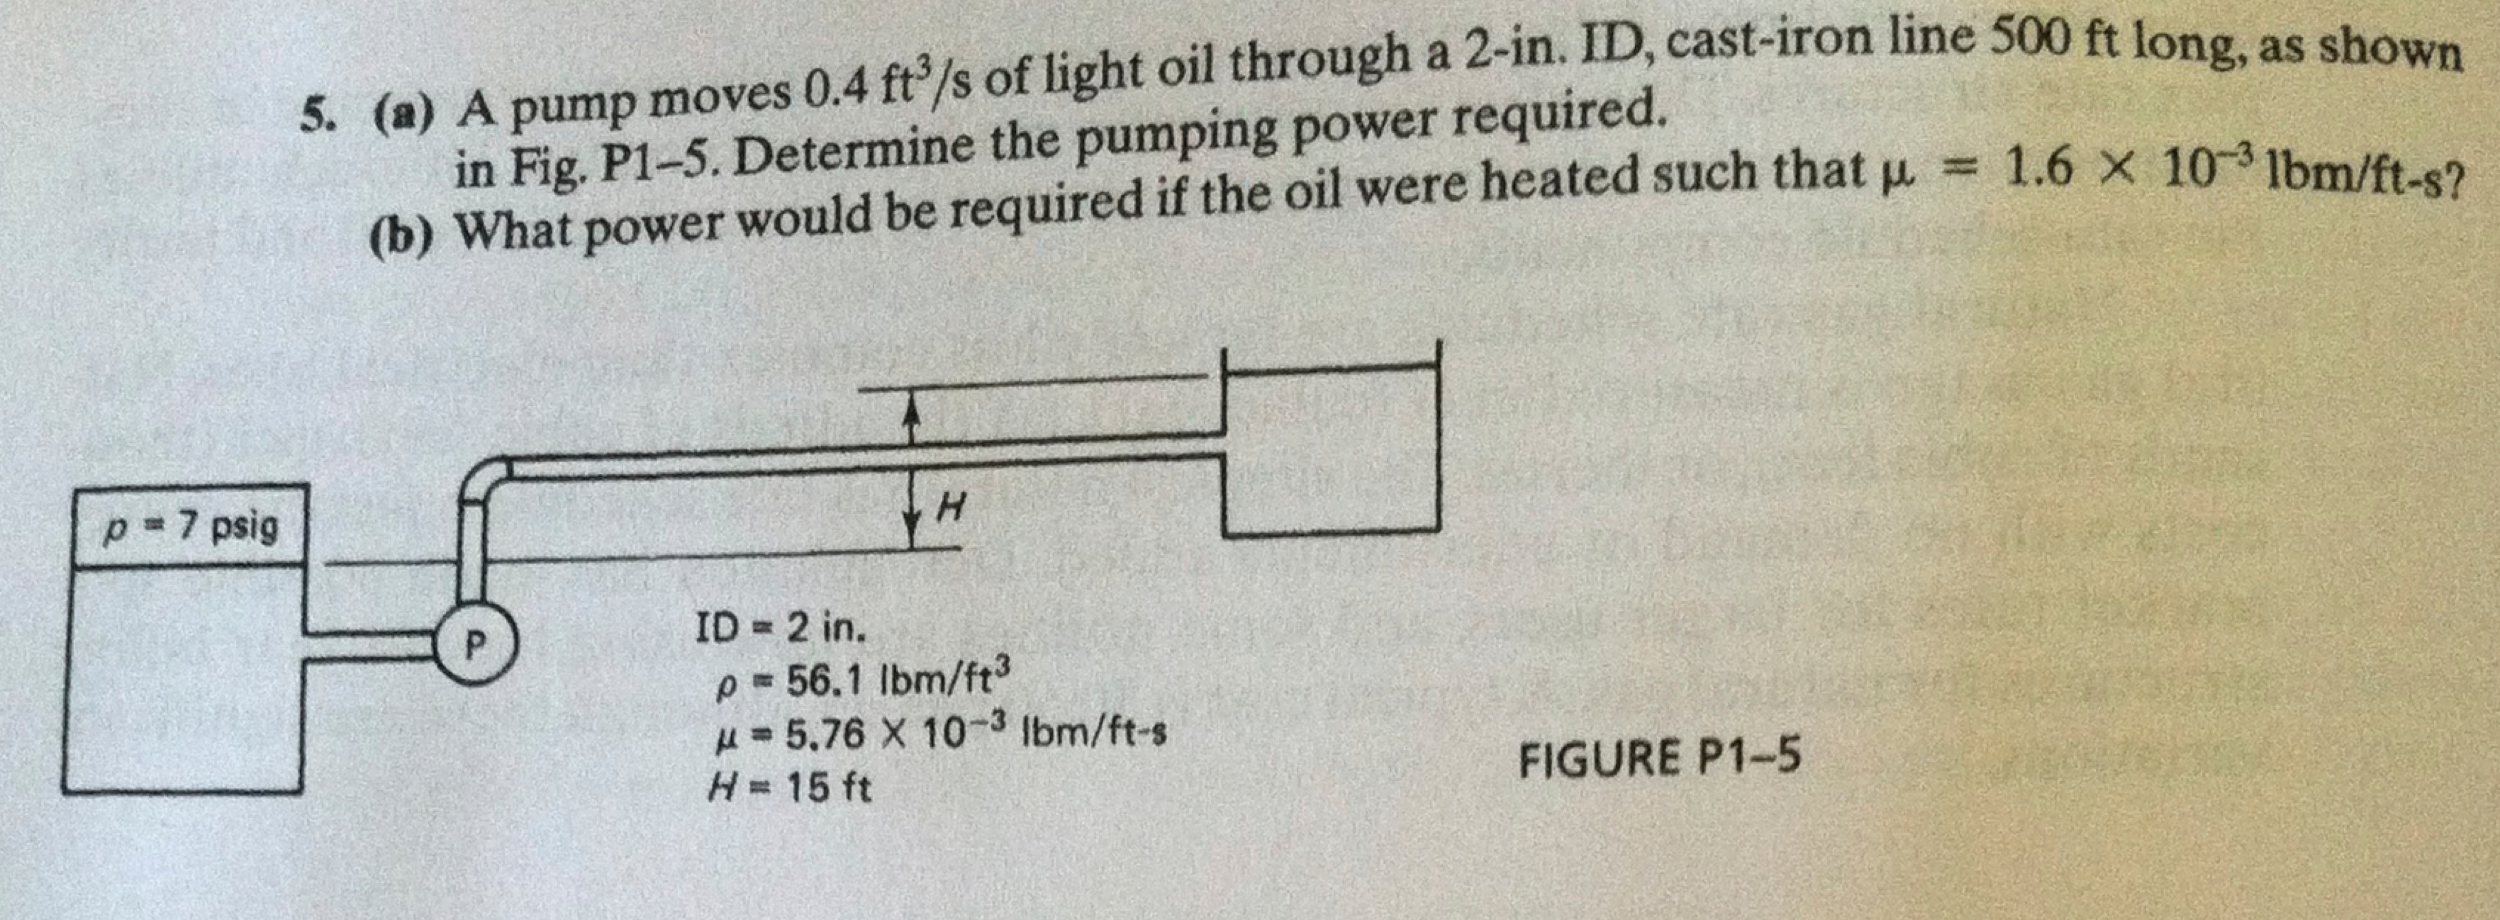 A pump moves 0.4 ft3/s of light oil through a 2-in